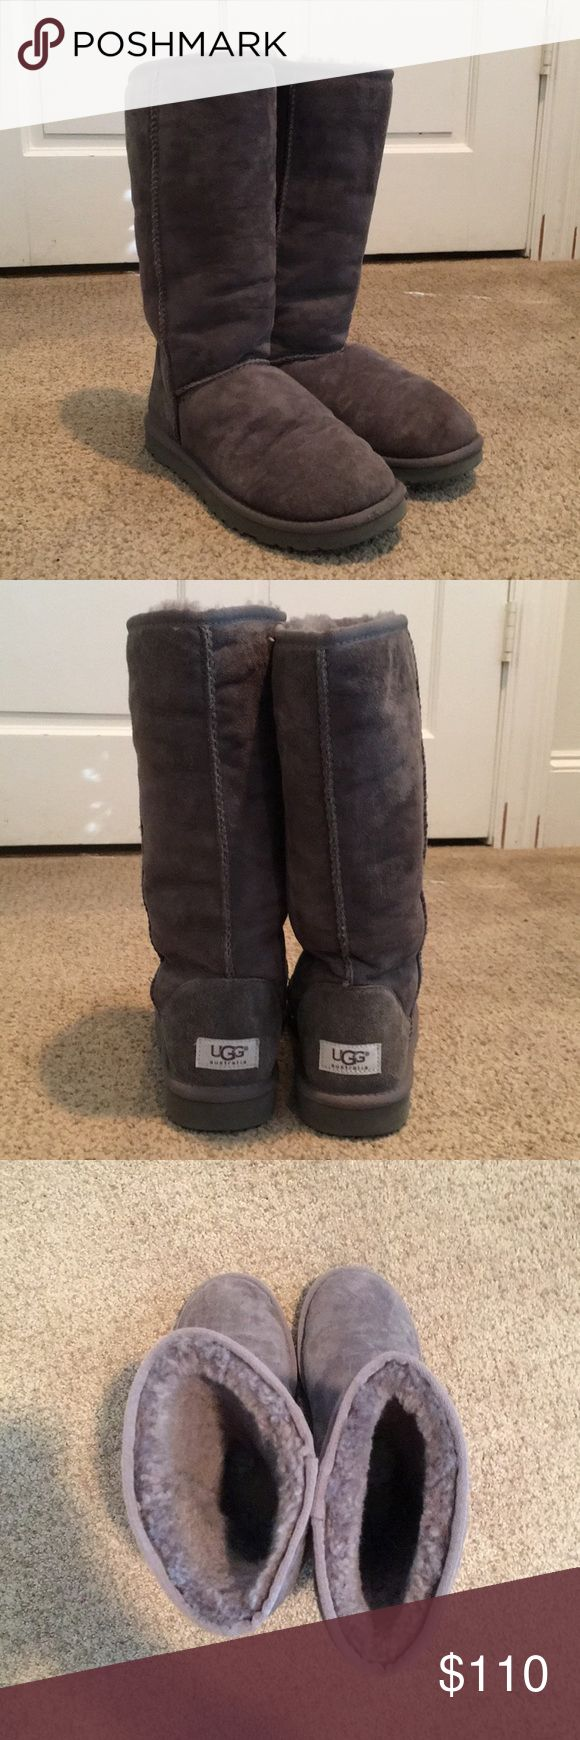 Tall Grey UGGS (Classic II Tall Boot) Worn several times during one winter, but in perfect used condition! Really warm, just not quite my style. Any markings you might see in the photos are just fingerprints in the suede— there are no stains or permanent markings on them! Please let me know if you have any questions, and feel free to make reasonable offers! UGG Shoes Winter & Rain Boots